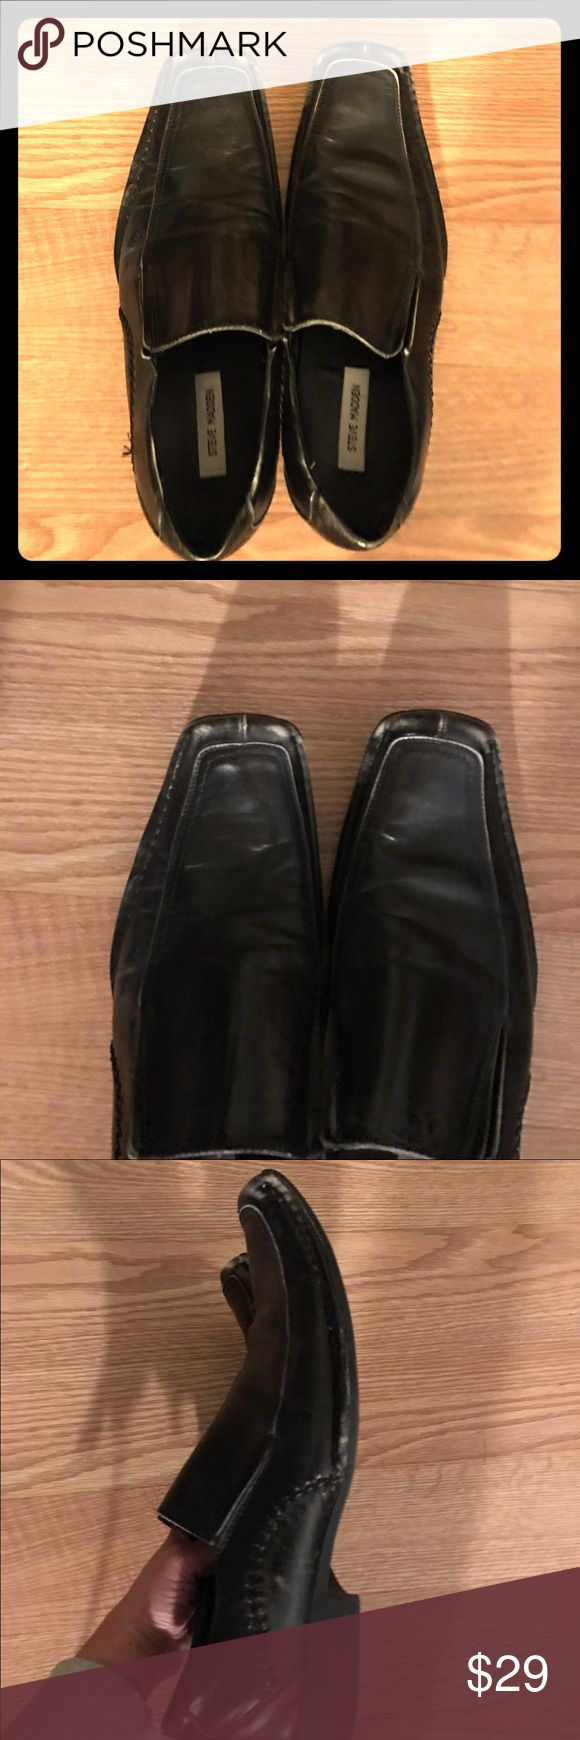 Steve Madden black leather loafers 10.5 black leather loafers. Size 10.5. Steve Madden. Ships within 24 hours. Steve Madden Shoes Loafers & Slip-Ons